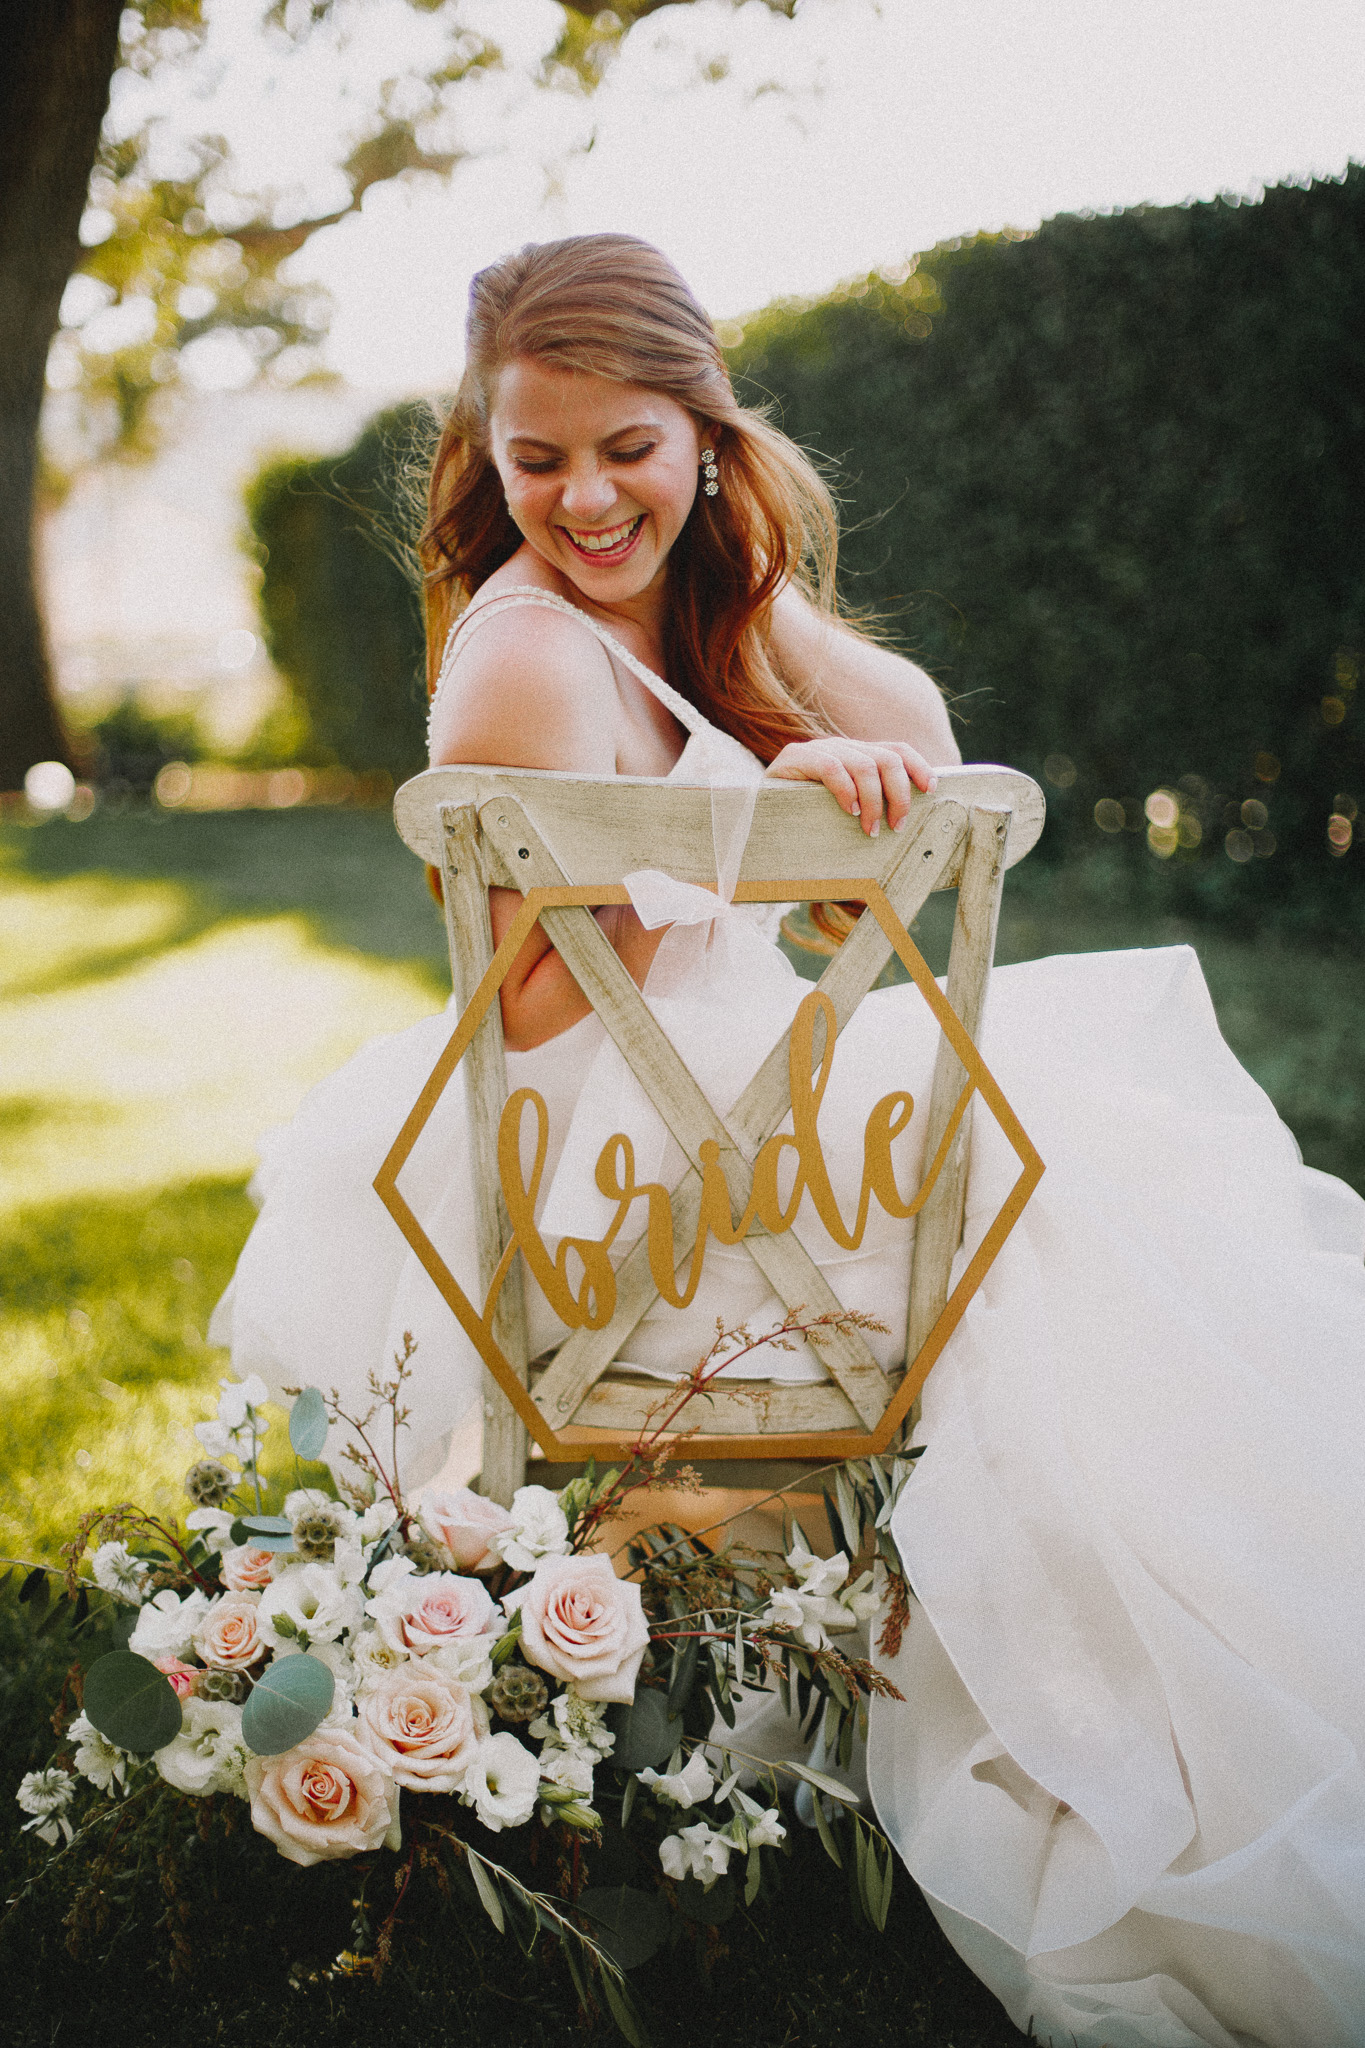 Archer_Inspired_Photography_Creatively_Curated_Workshop_San_Martin_Bridal_Shoot-36.jpg